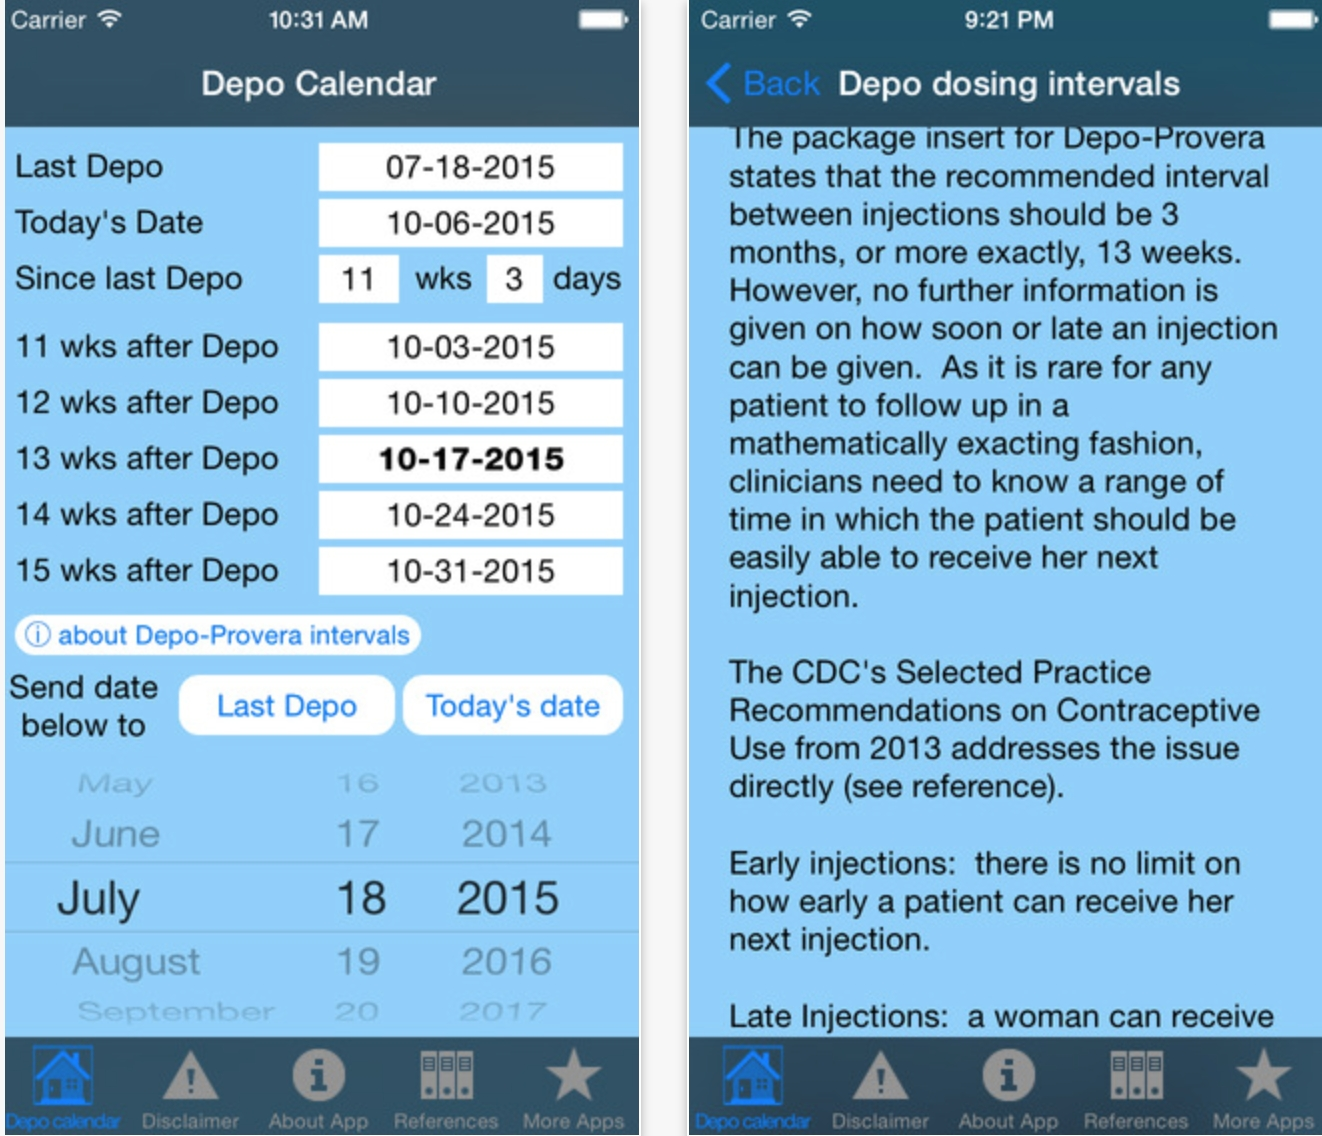 Depo Calendar App Could Significantly Improve Contraception  Depo Calculator